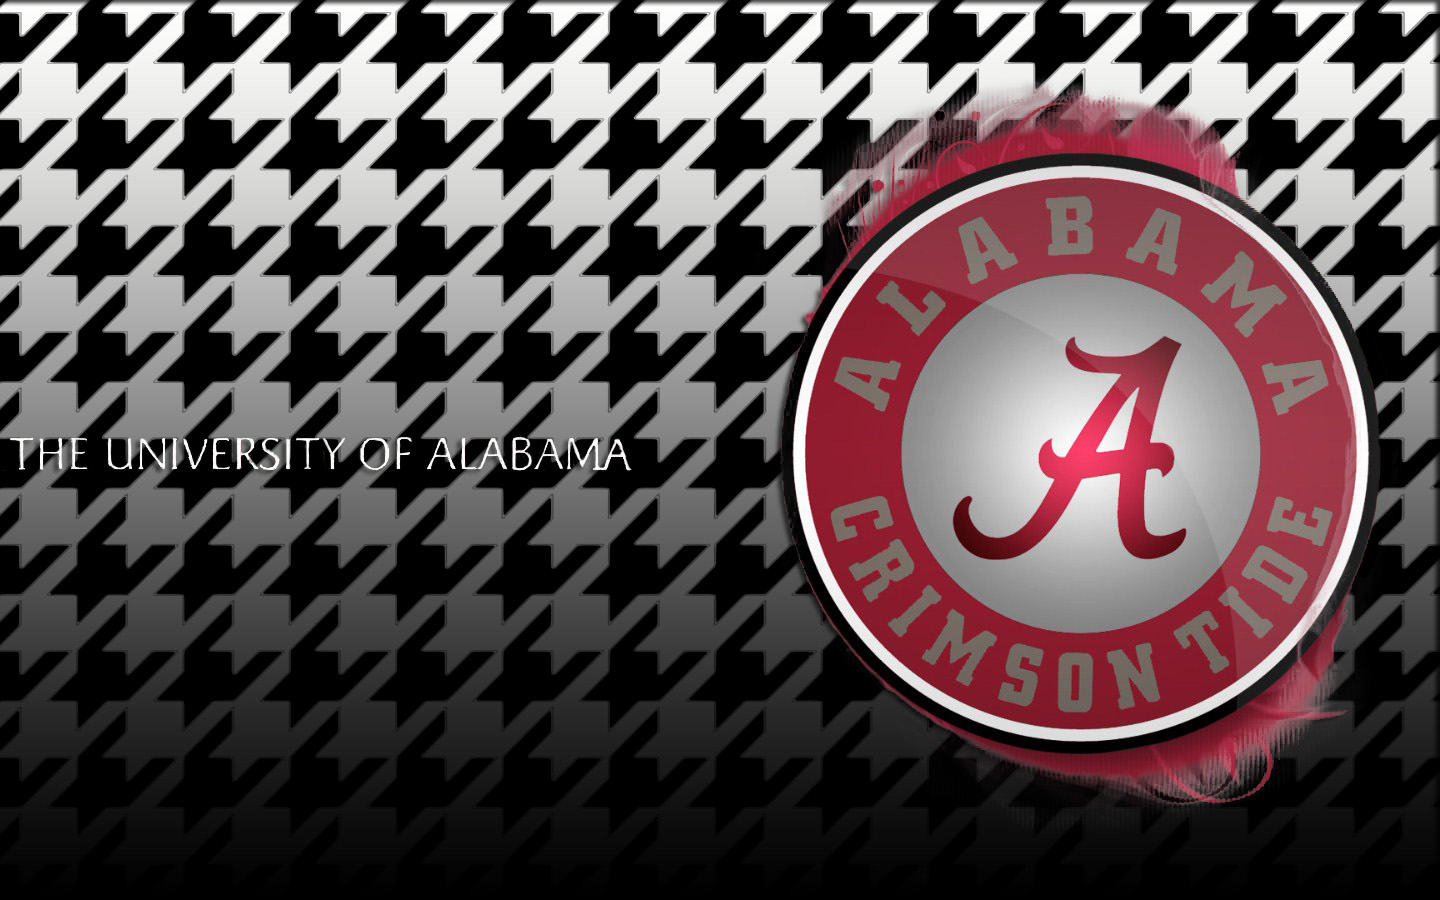 10+ images about Alabama on Pinterest | Alabama, Logos and Free